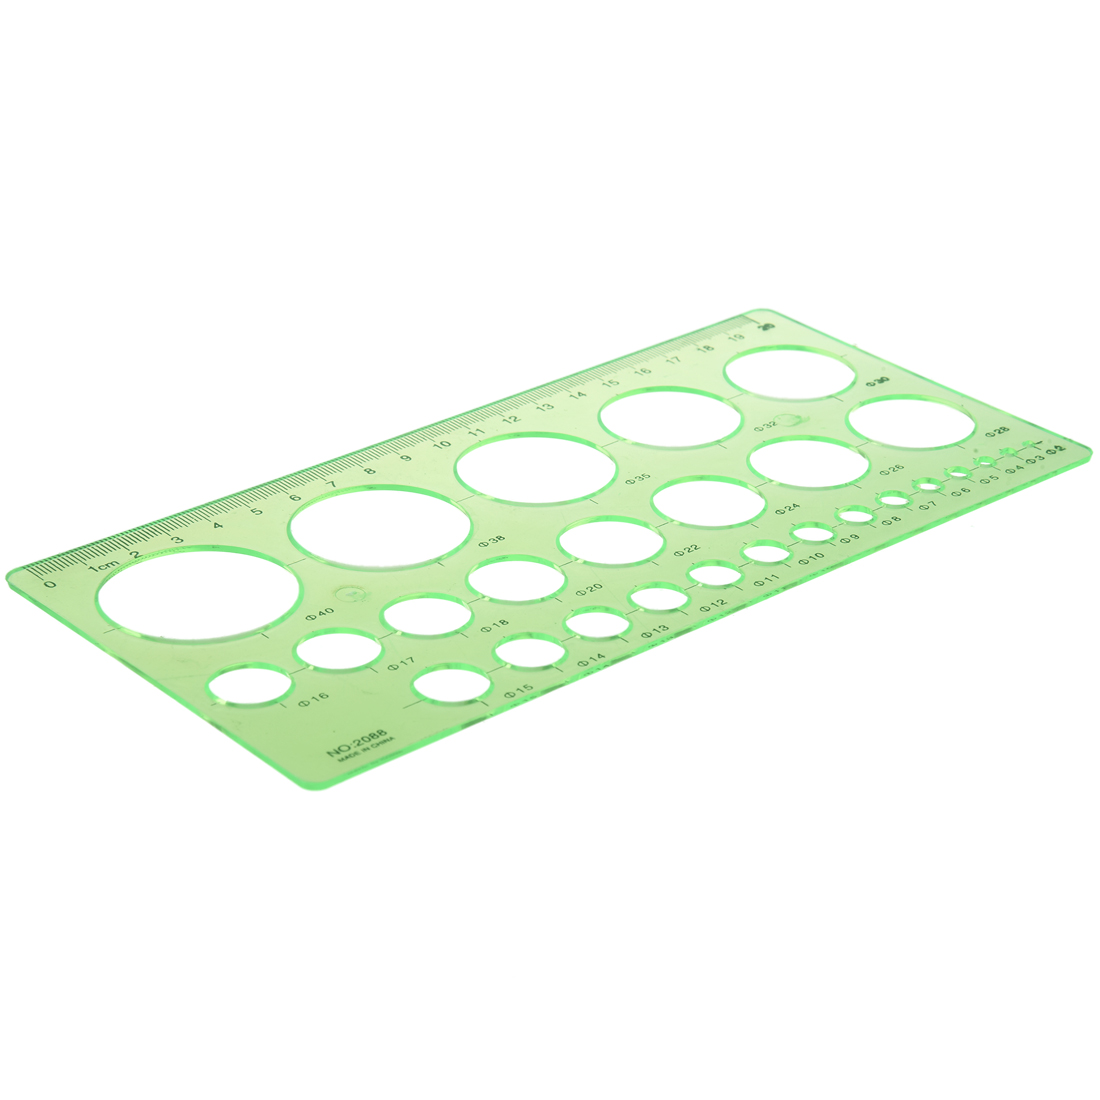 Affordable Amico Green Plastic Students Rectangle Shape ...  Affordable Amic...